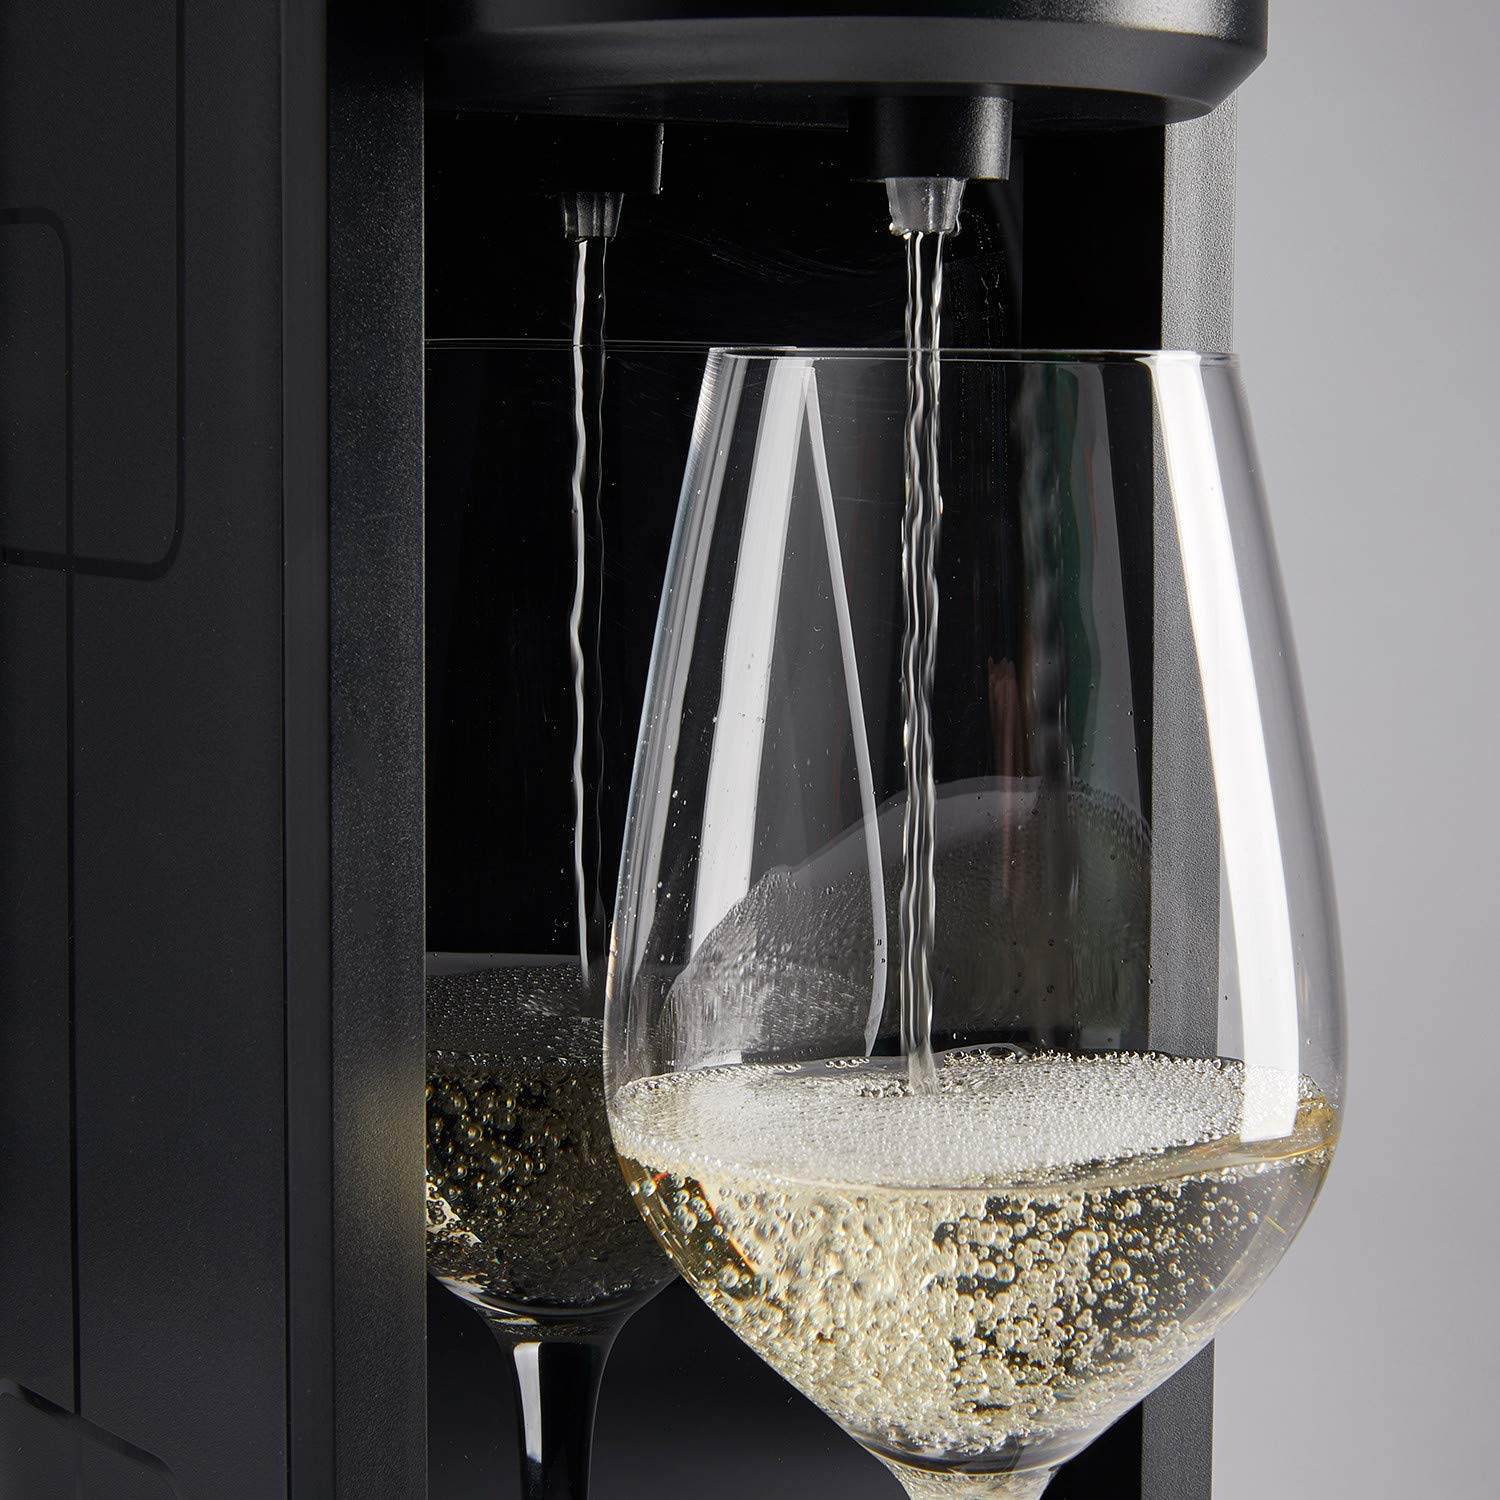 Tapology Connoisseur Wine Aerating Tap, Black by Tapology (Image #4)